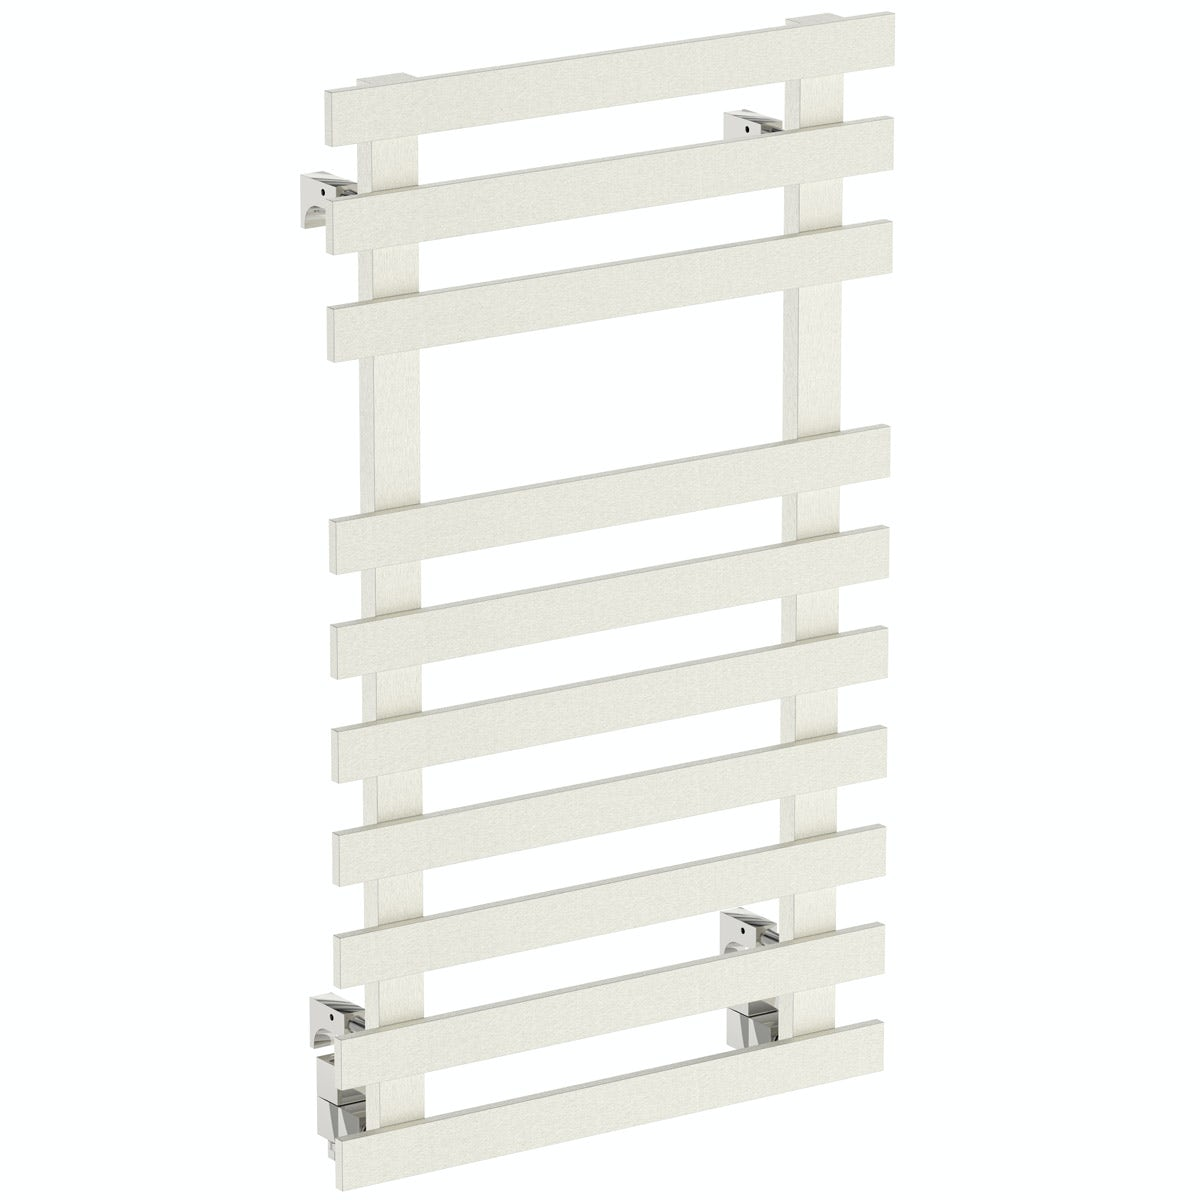 Mode Daisy 10 bar heated towel rail 840 x 500